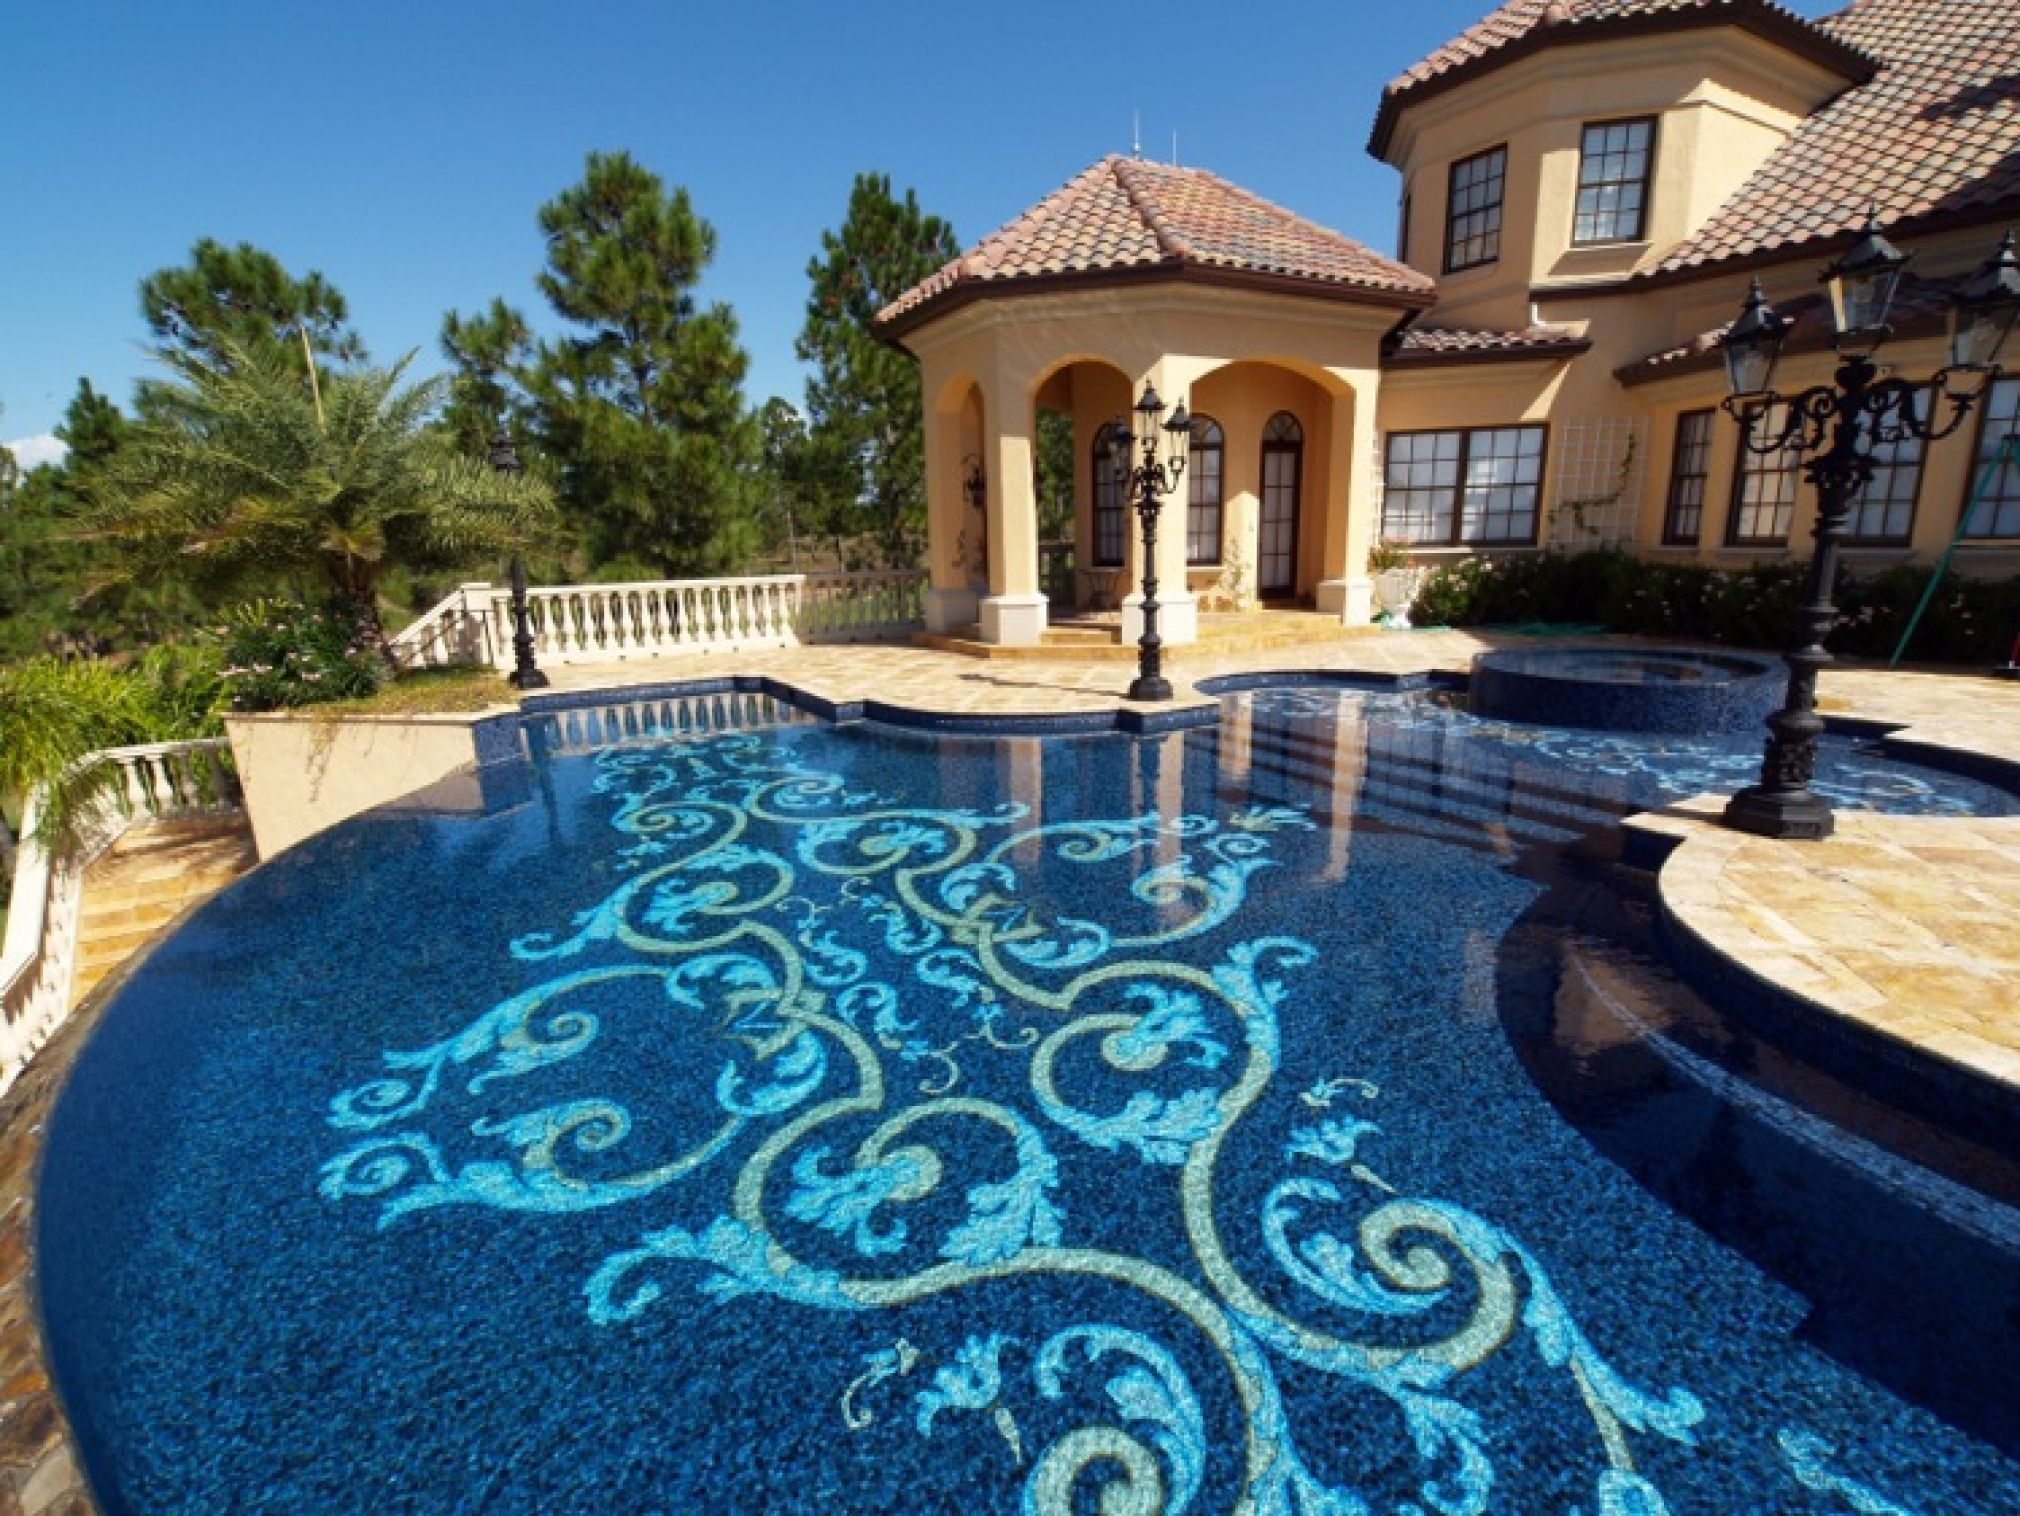 Best Luxury Pool | Interesting Luxury Pool Design | Pinterest ...